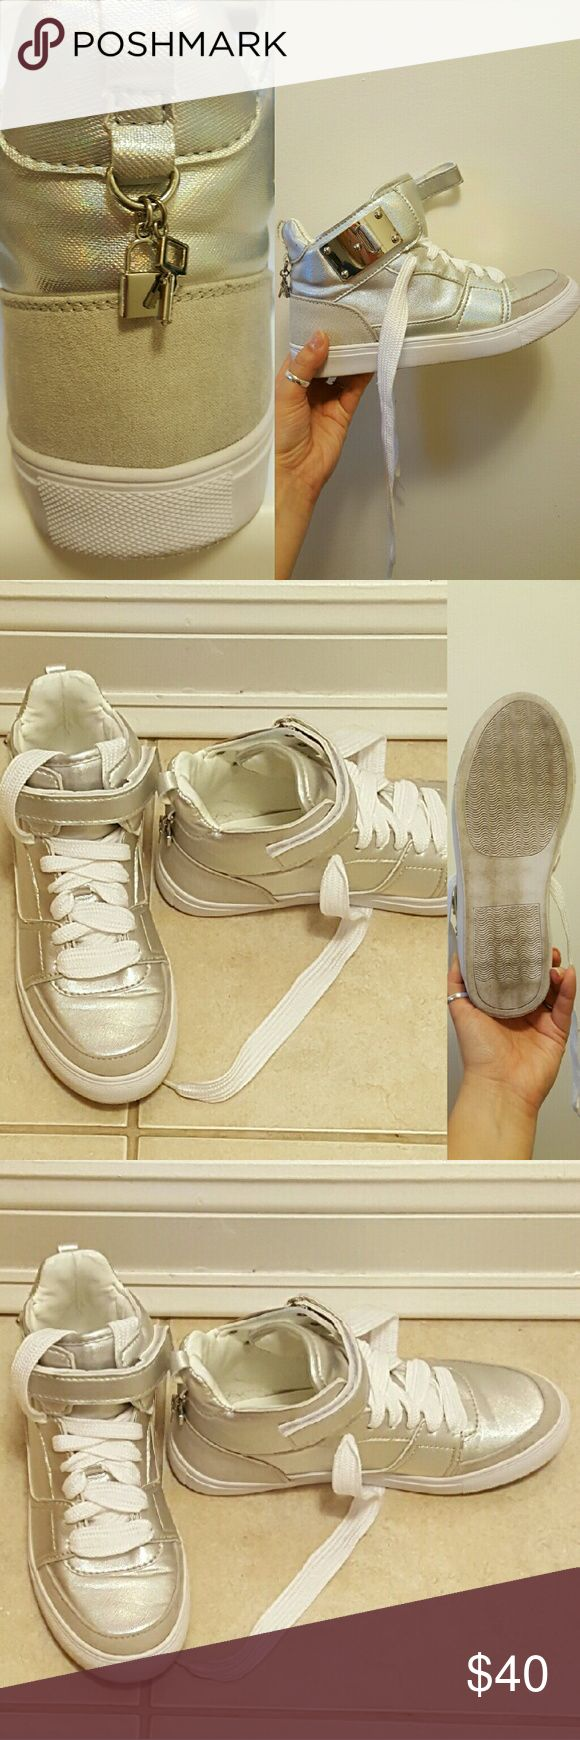 Madden Girl High Too Sneakers Almost new high top sneakers in silver and white Madden Girl Shoes Sneakers